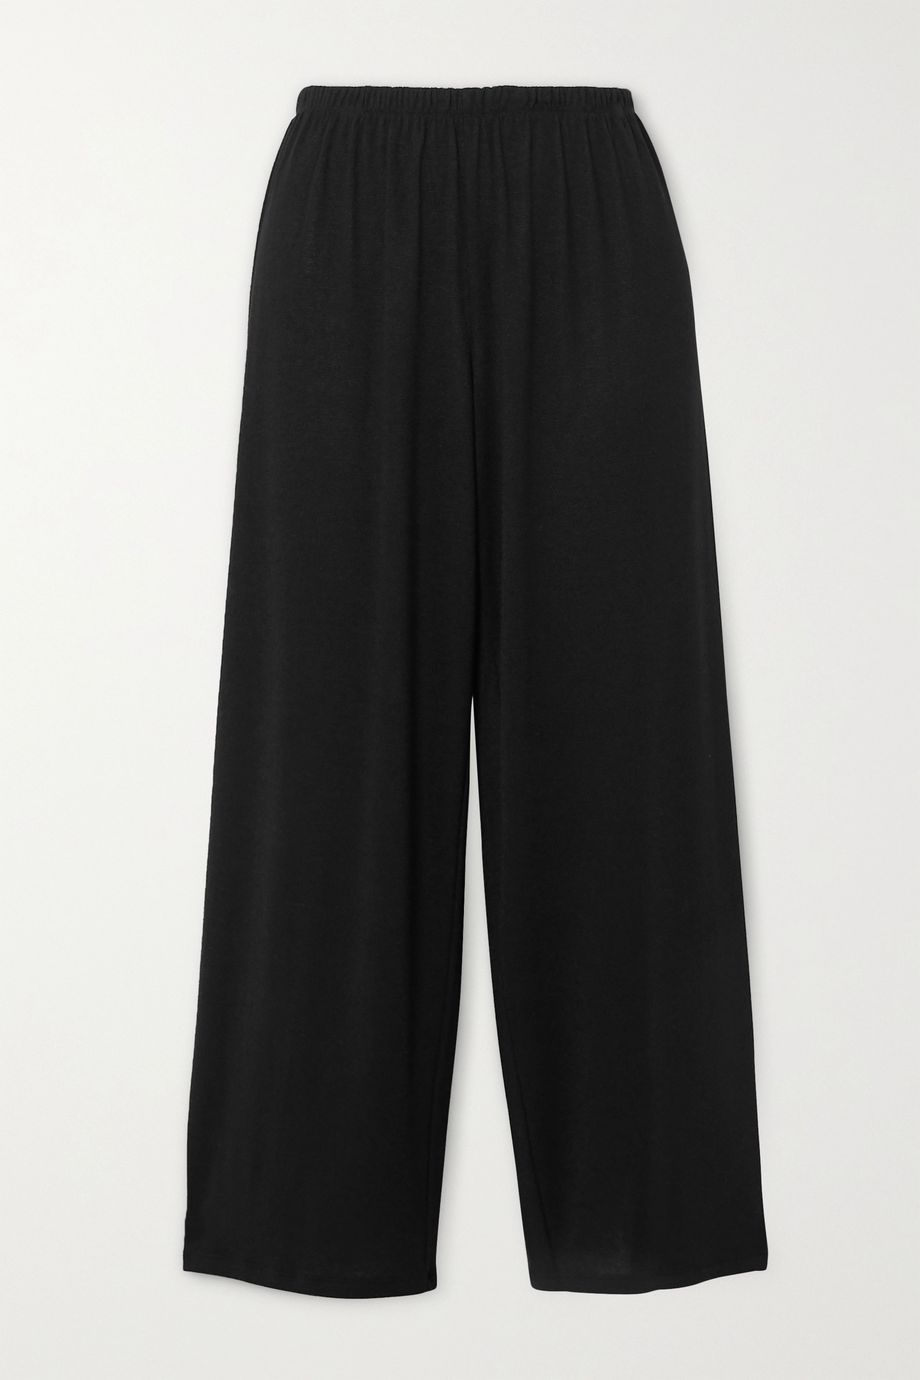 Vince Cropped jersey pants